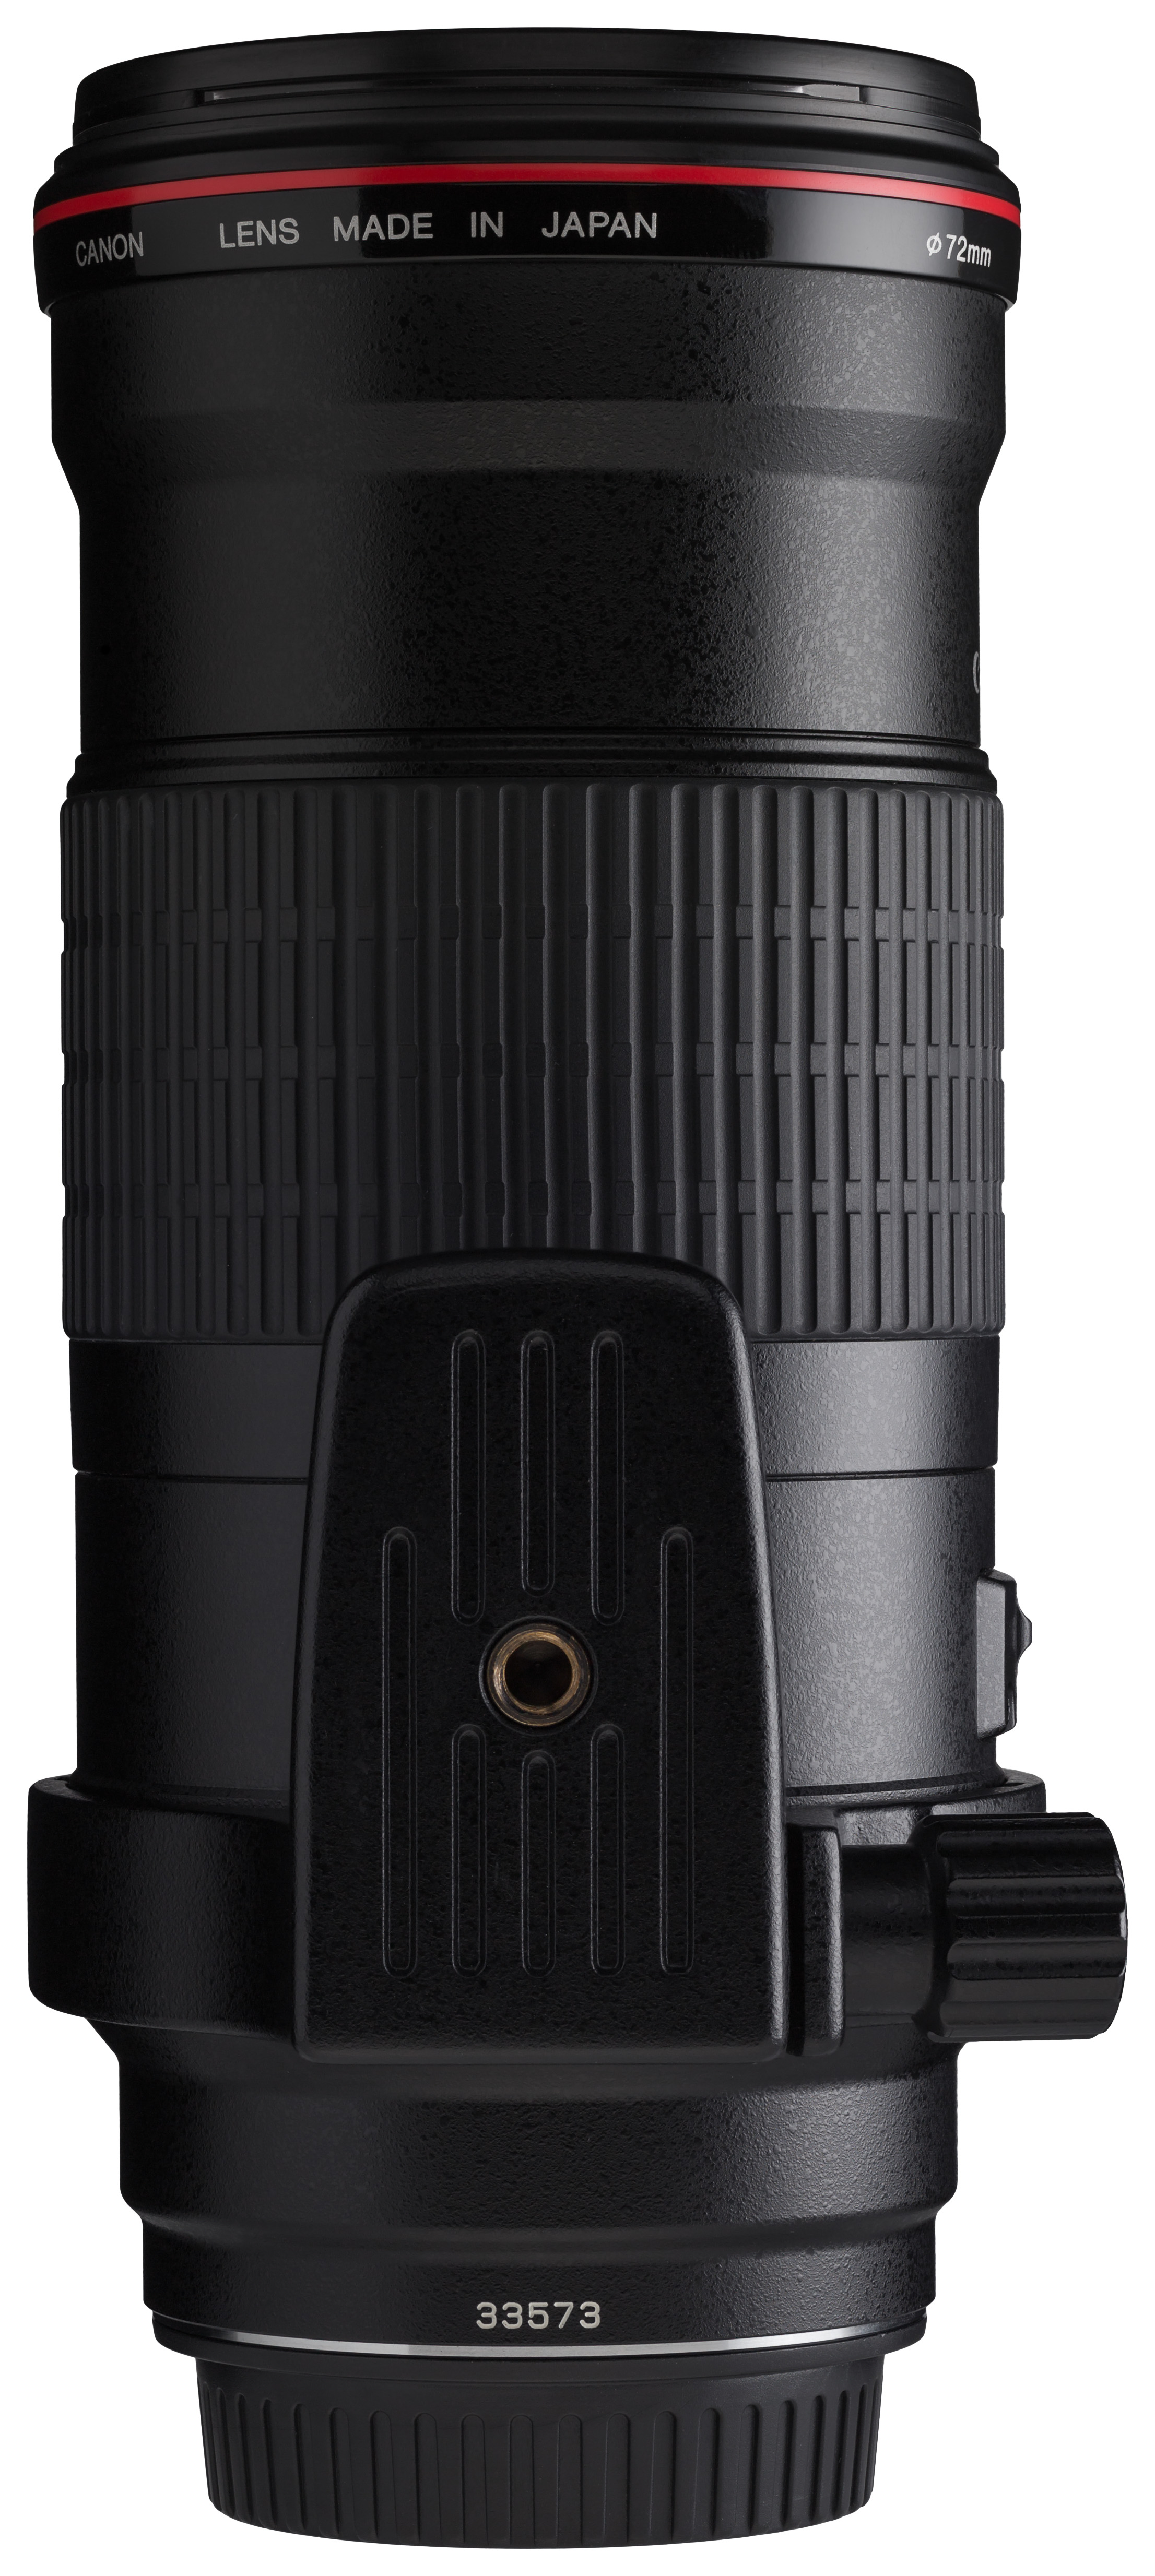 Canon EF 180mm f3.5L Macro USM back horizontal with tripod ring